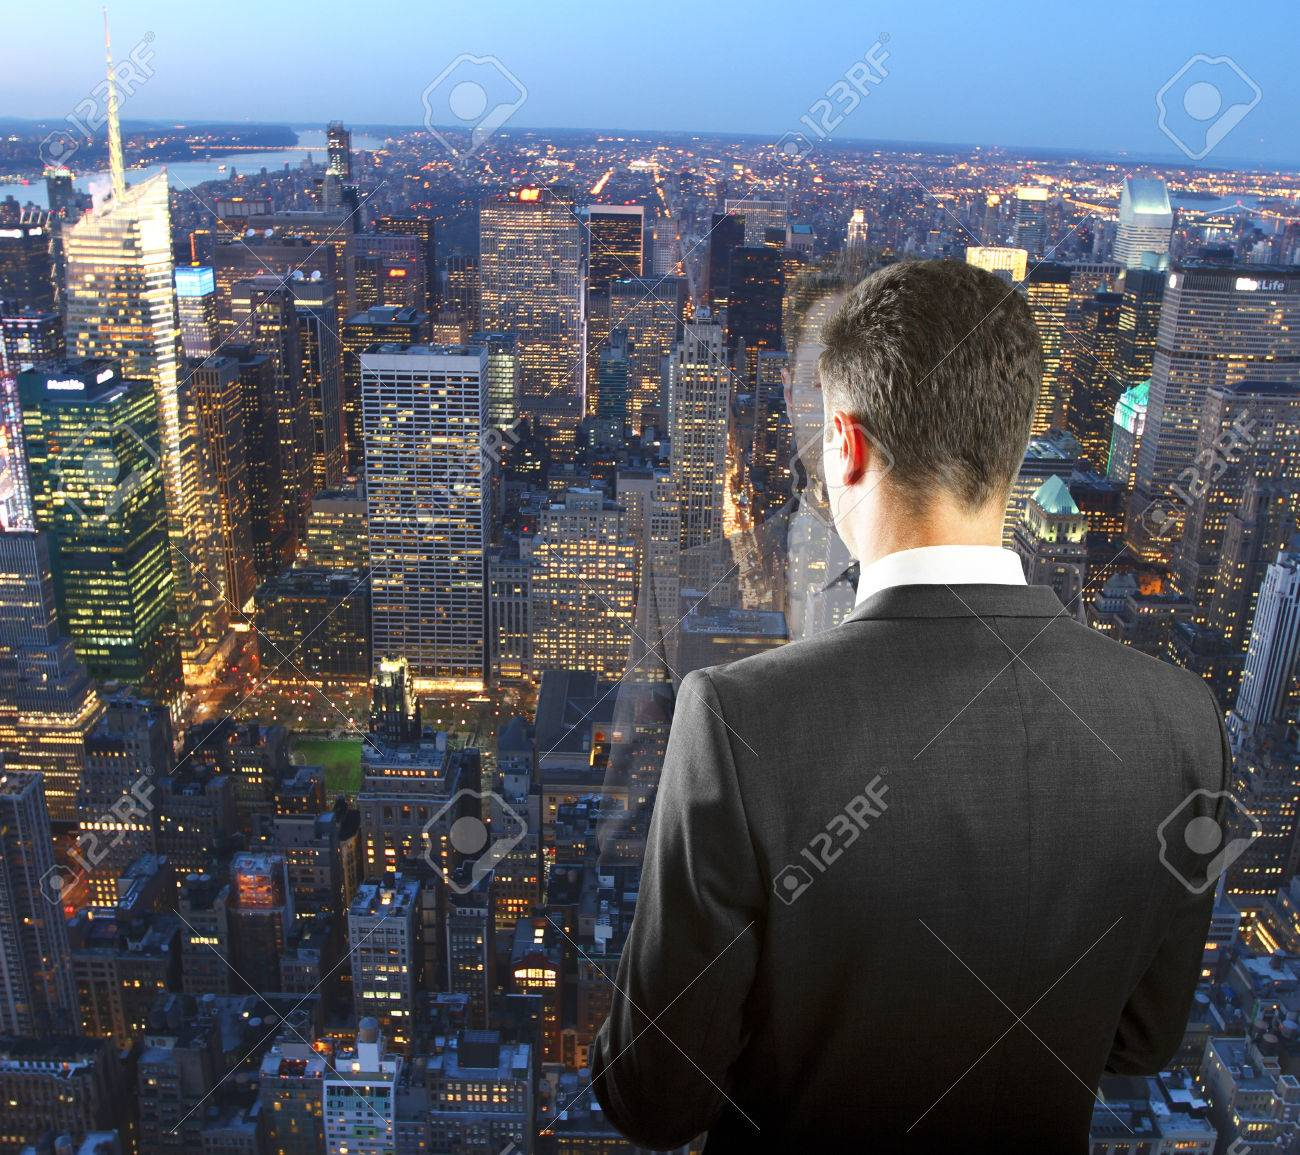 Businessman On The Top Of Skyscraper Looking At Night Megapolis City Stock Photo